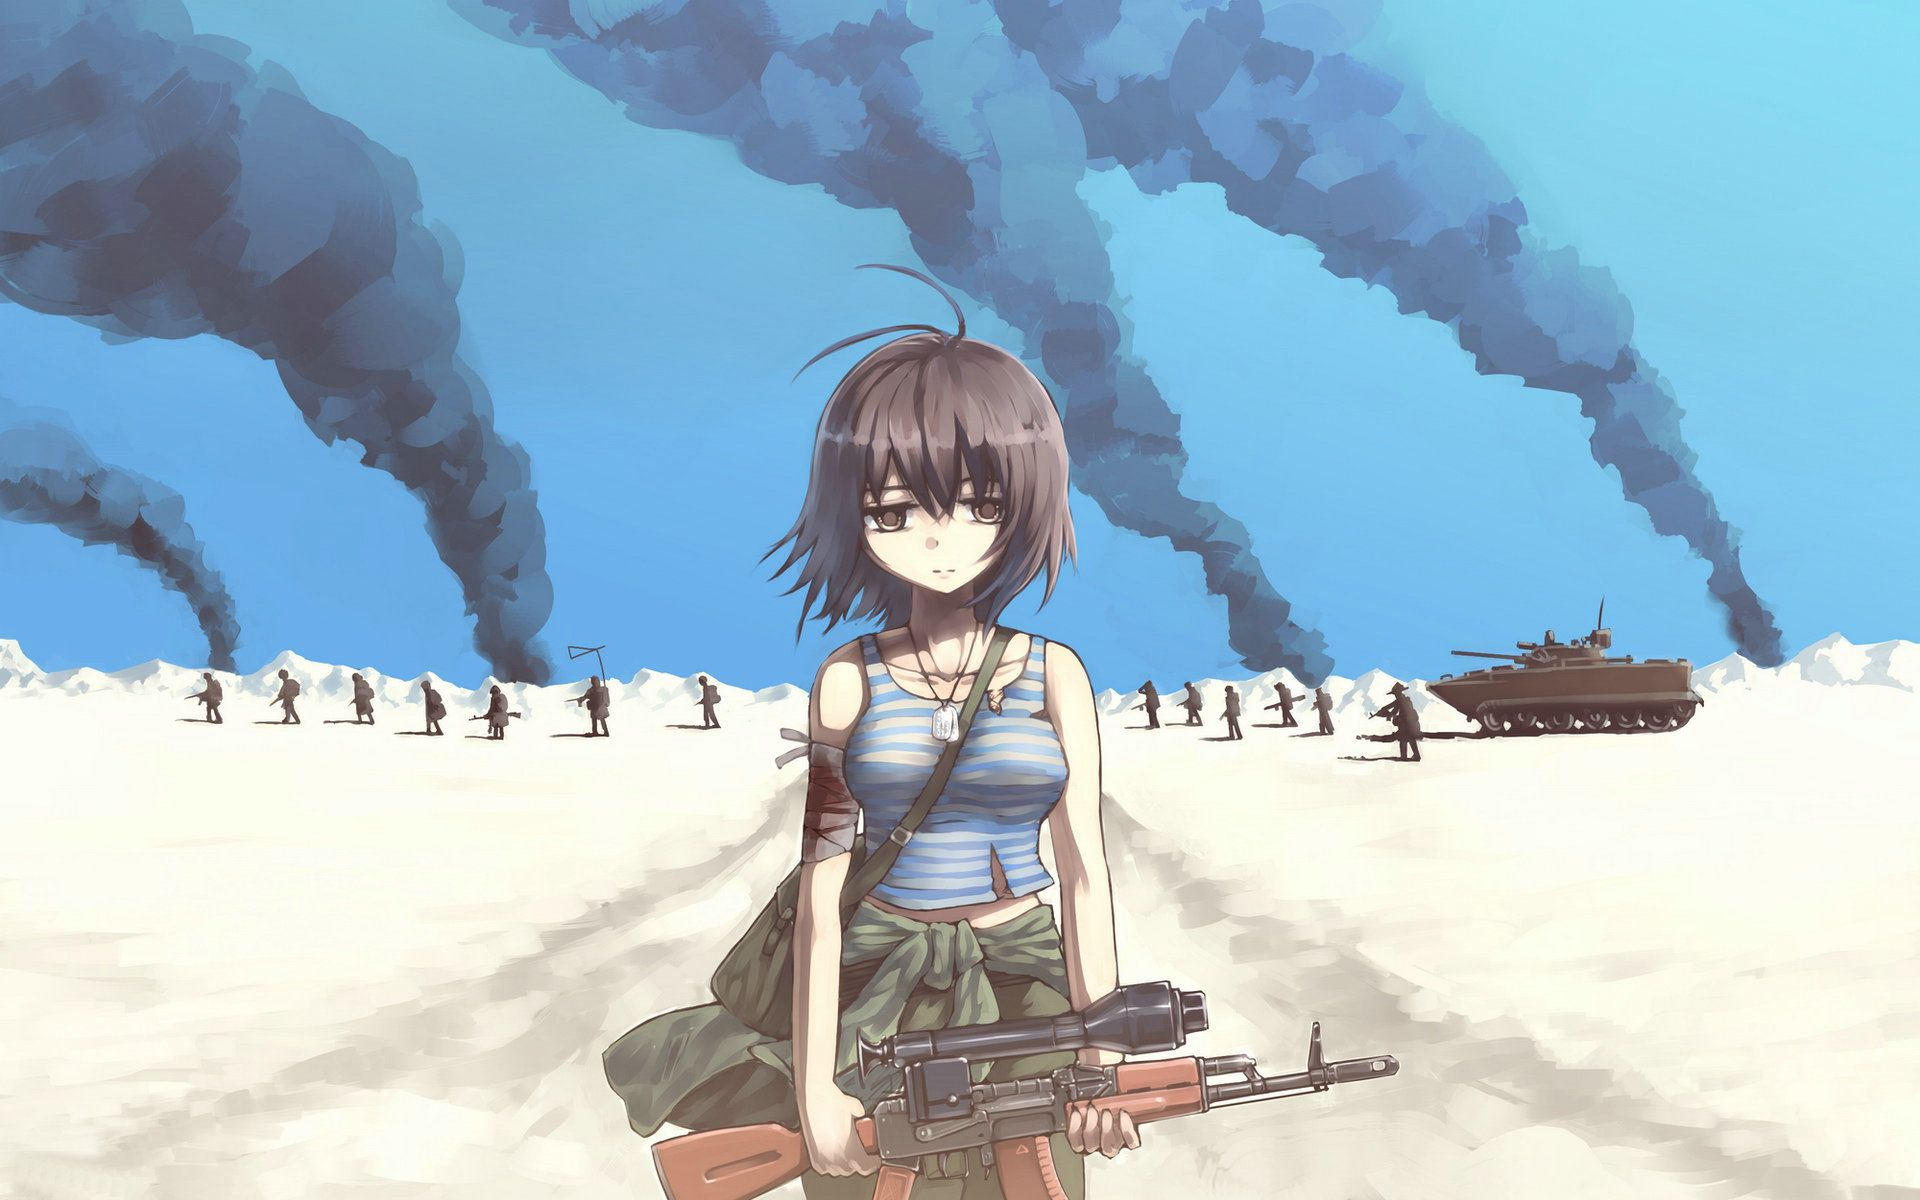 anime-soldier-girl-desktop-wallpaper-1920x1200.jpg (1920 ...